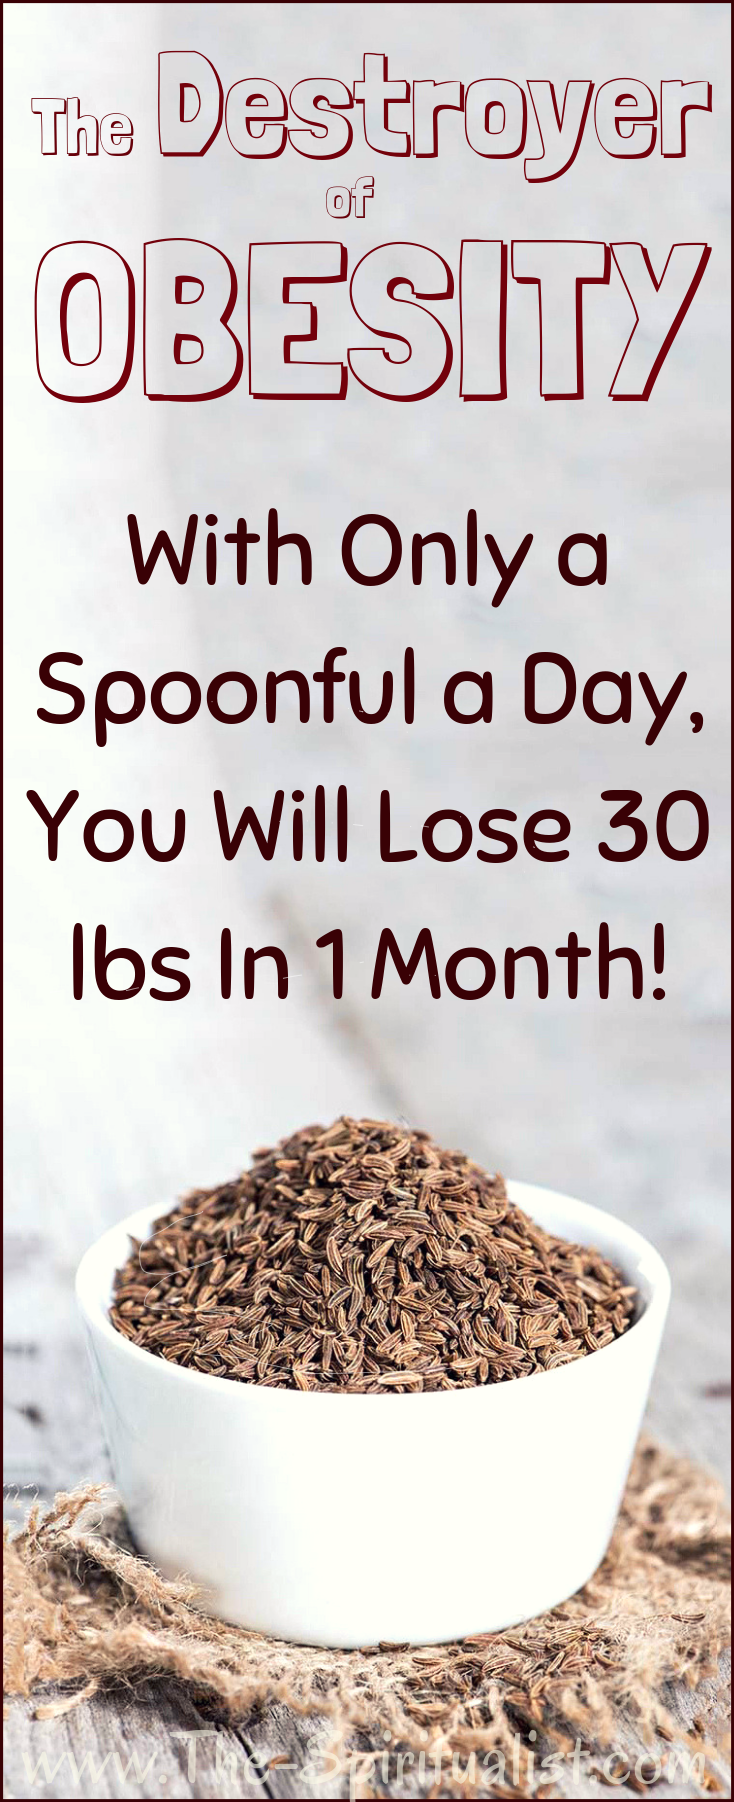 Destroyer of OBESITY - With Only a Spoonful a Day, You Will Lose 30 lbs in 1 Month of OBESITY - With Only a Spoonful a Day, You Will Lose 30 lbs in 1 Month